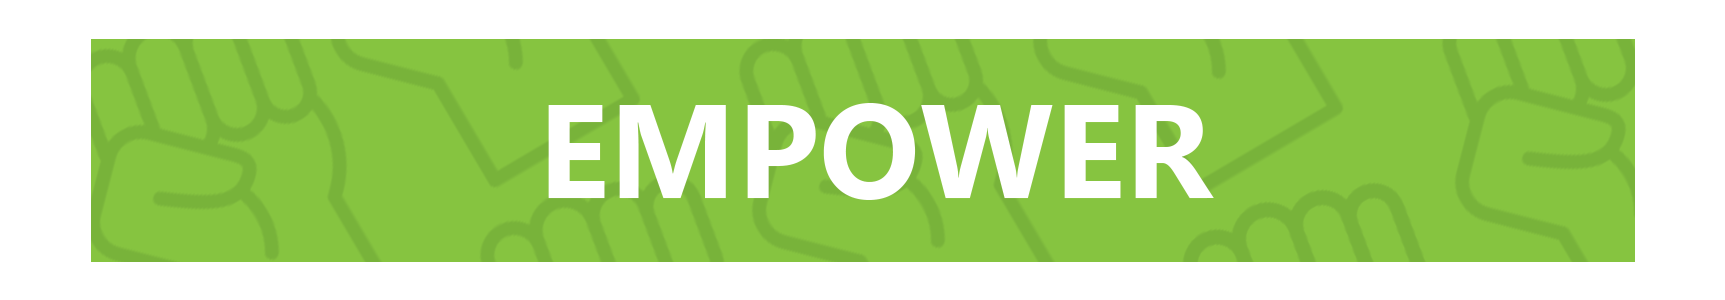 Empower Your Team with SecureWorker™